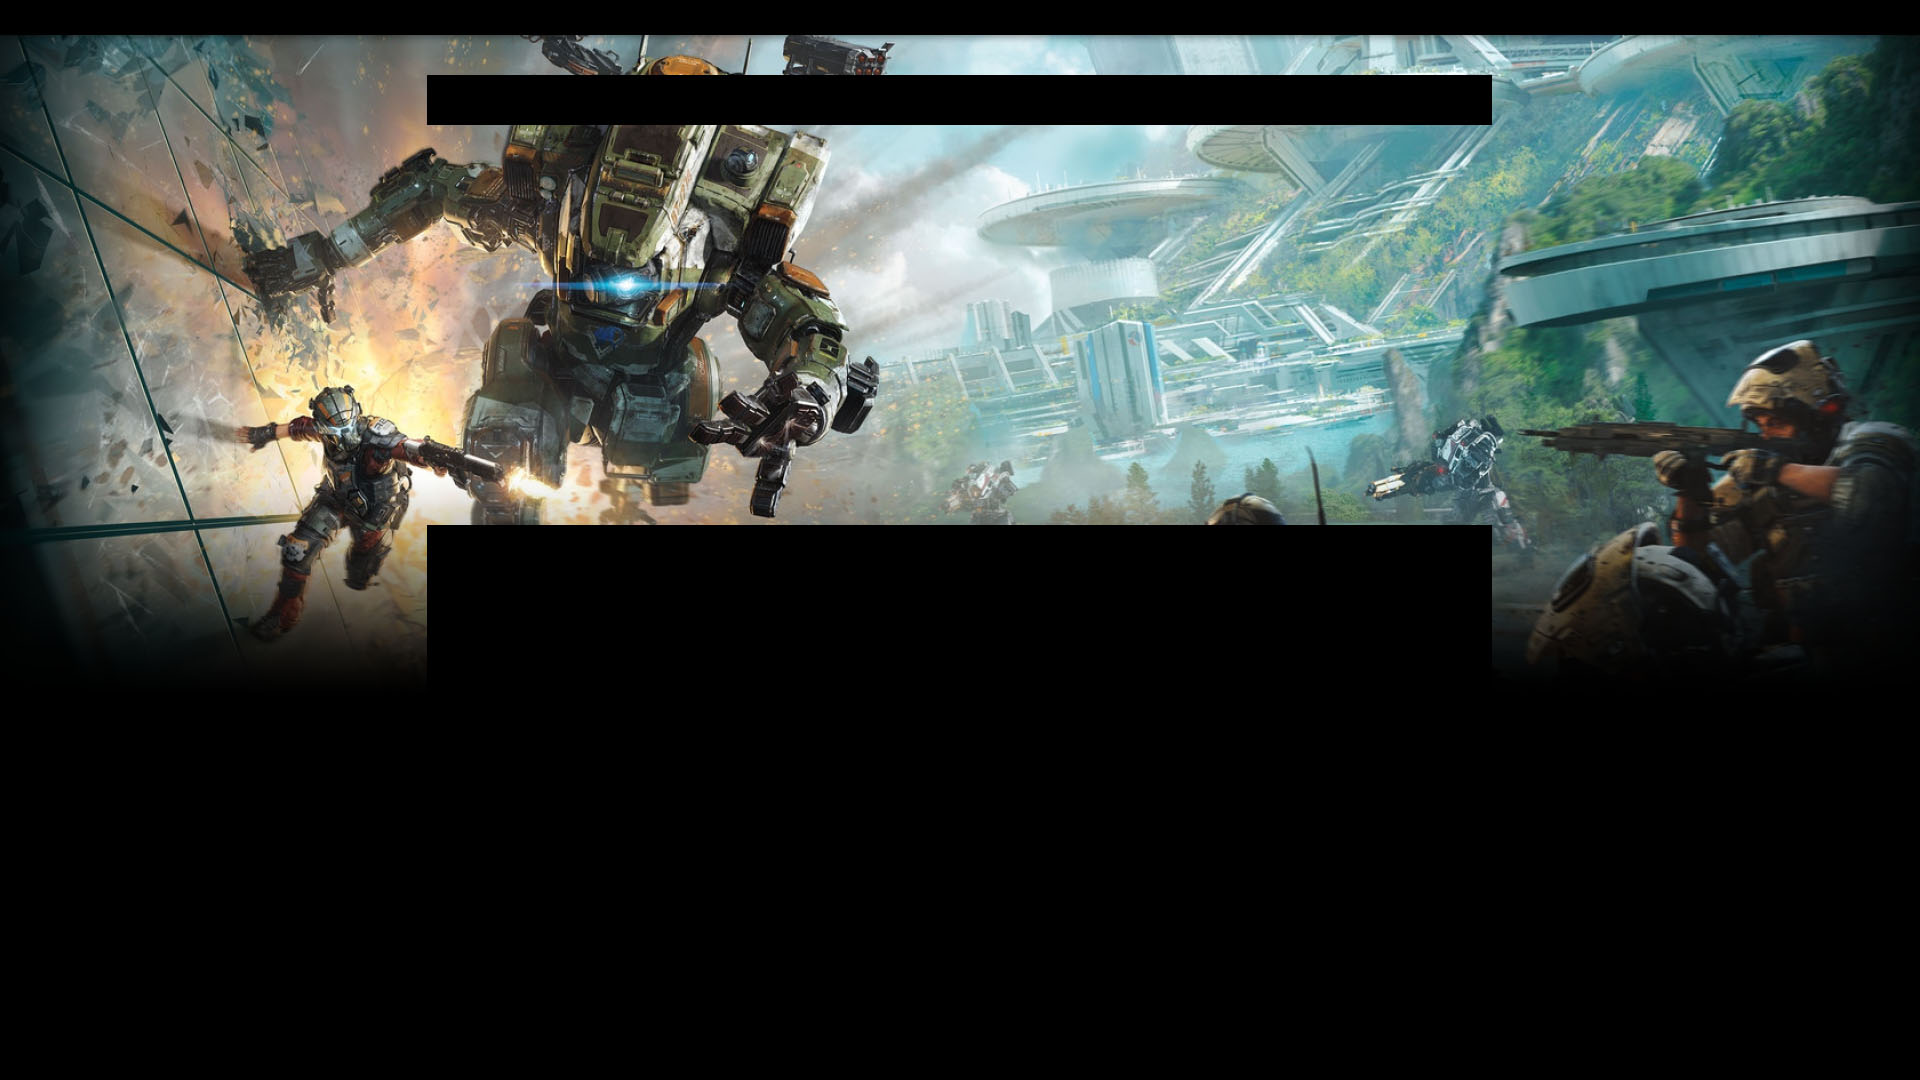 TITANFALL 2 [PC/XBOX ONE/PS4] video game